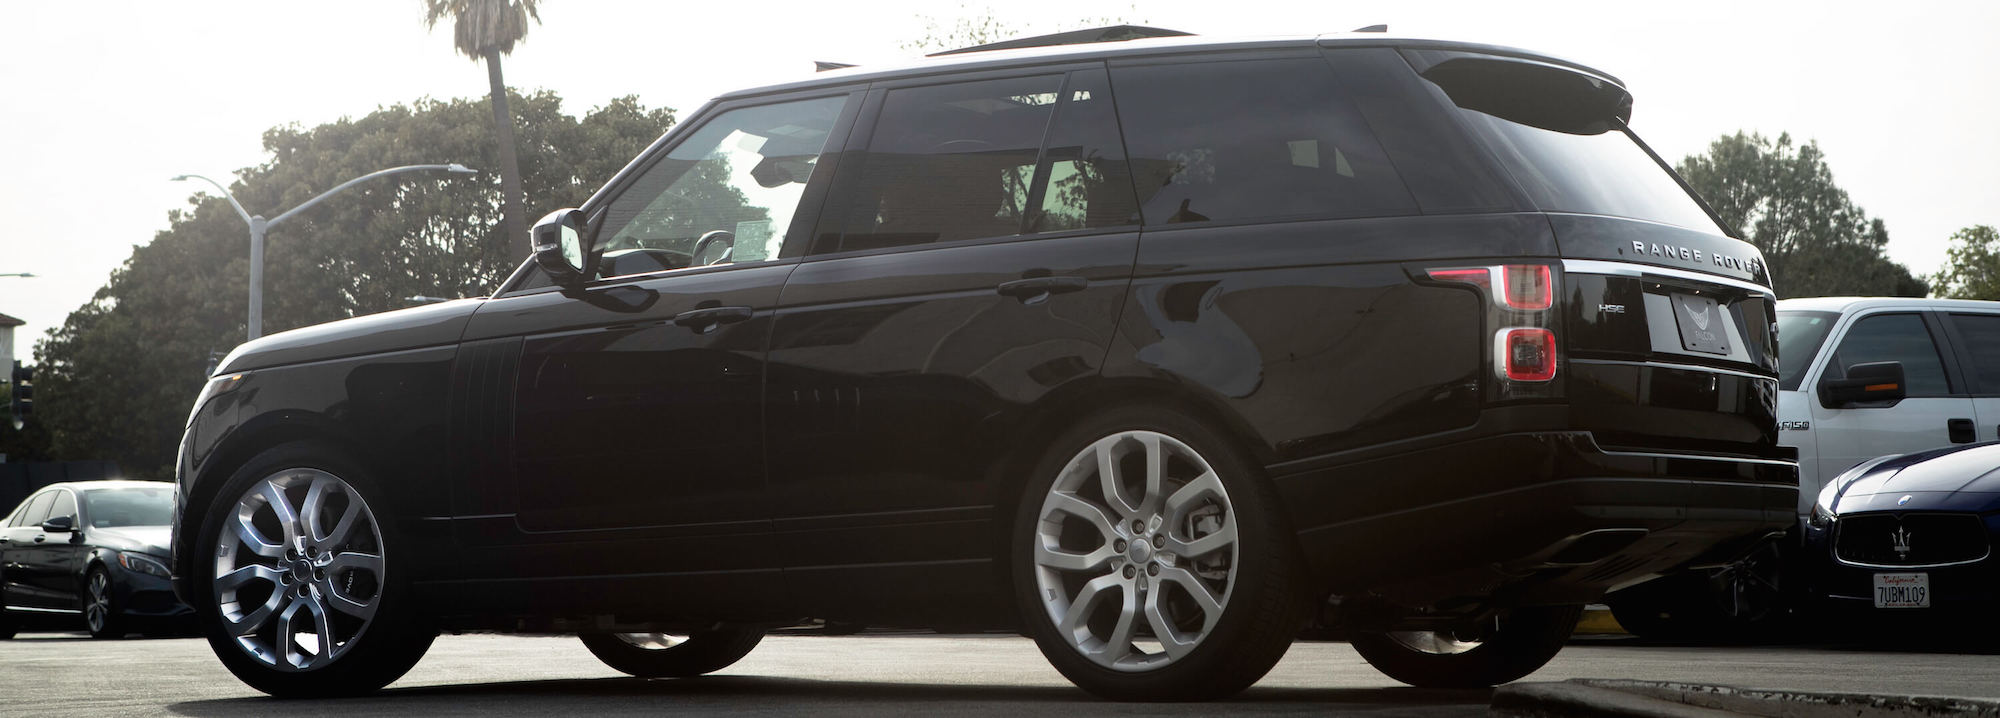 5 Reasons the Range Rover is the Perfect Car to Rent in Los Angeles